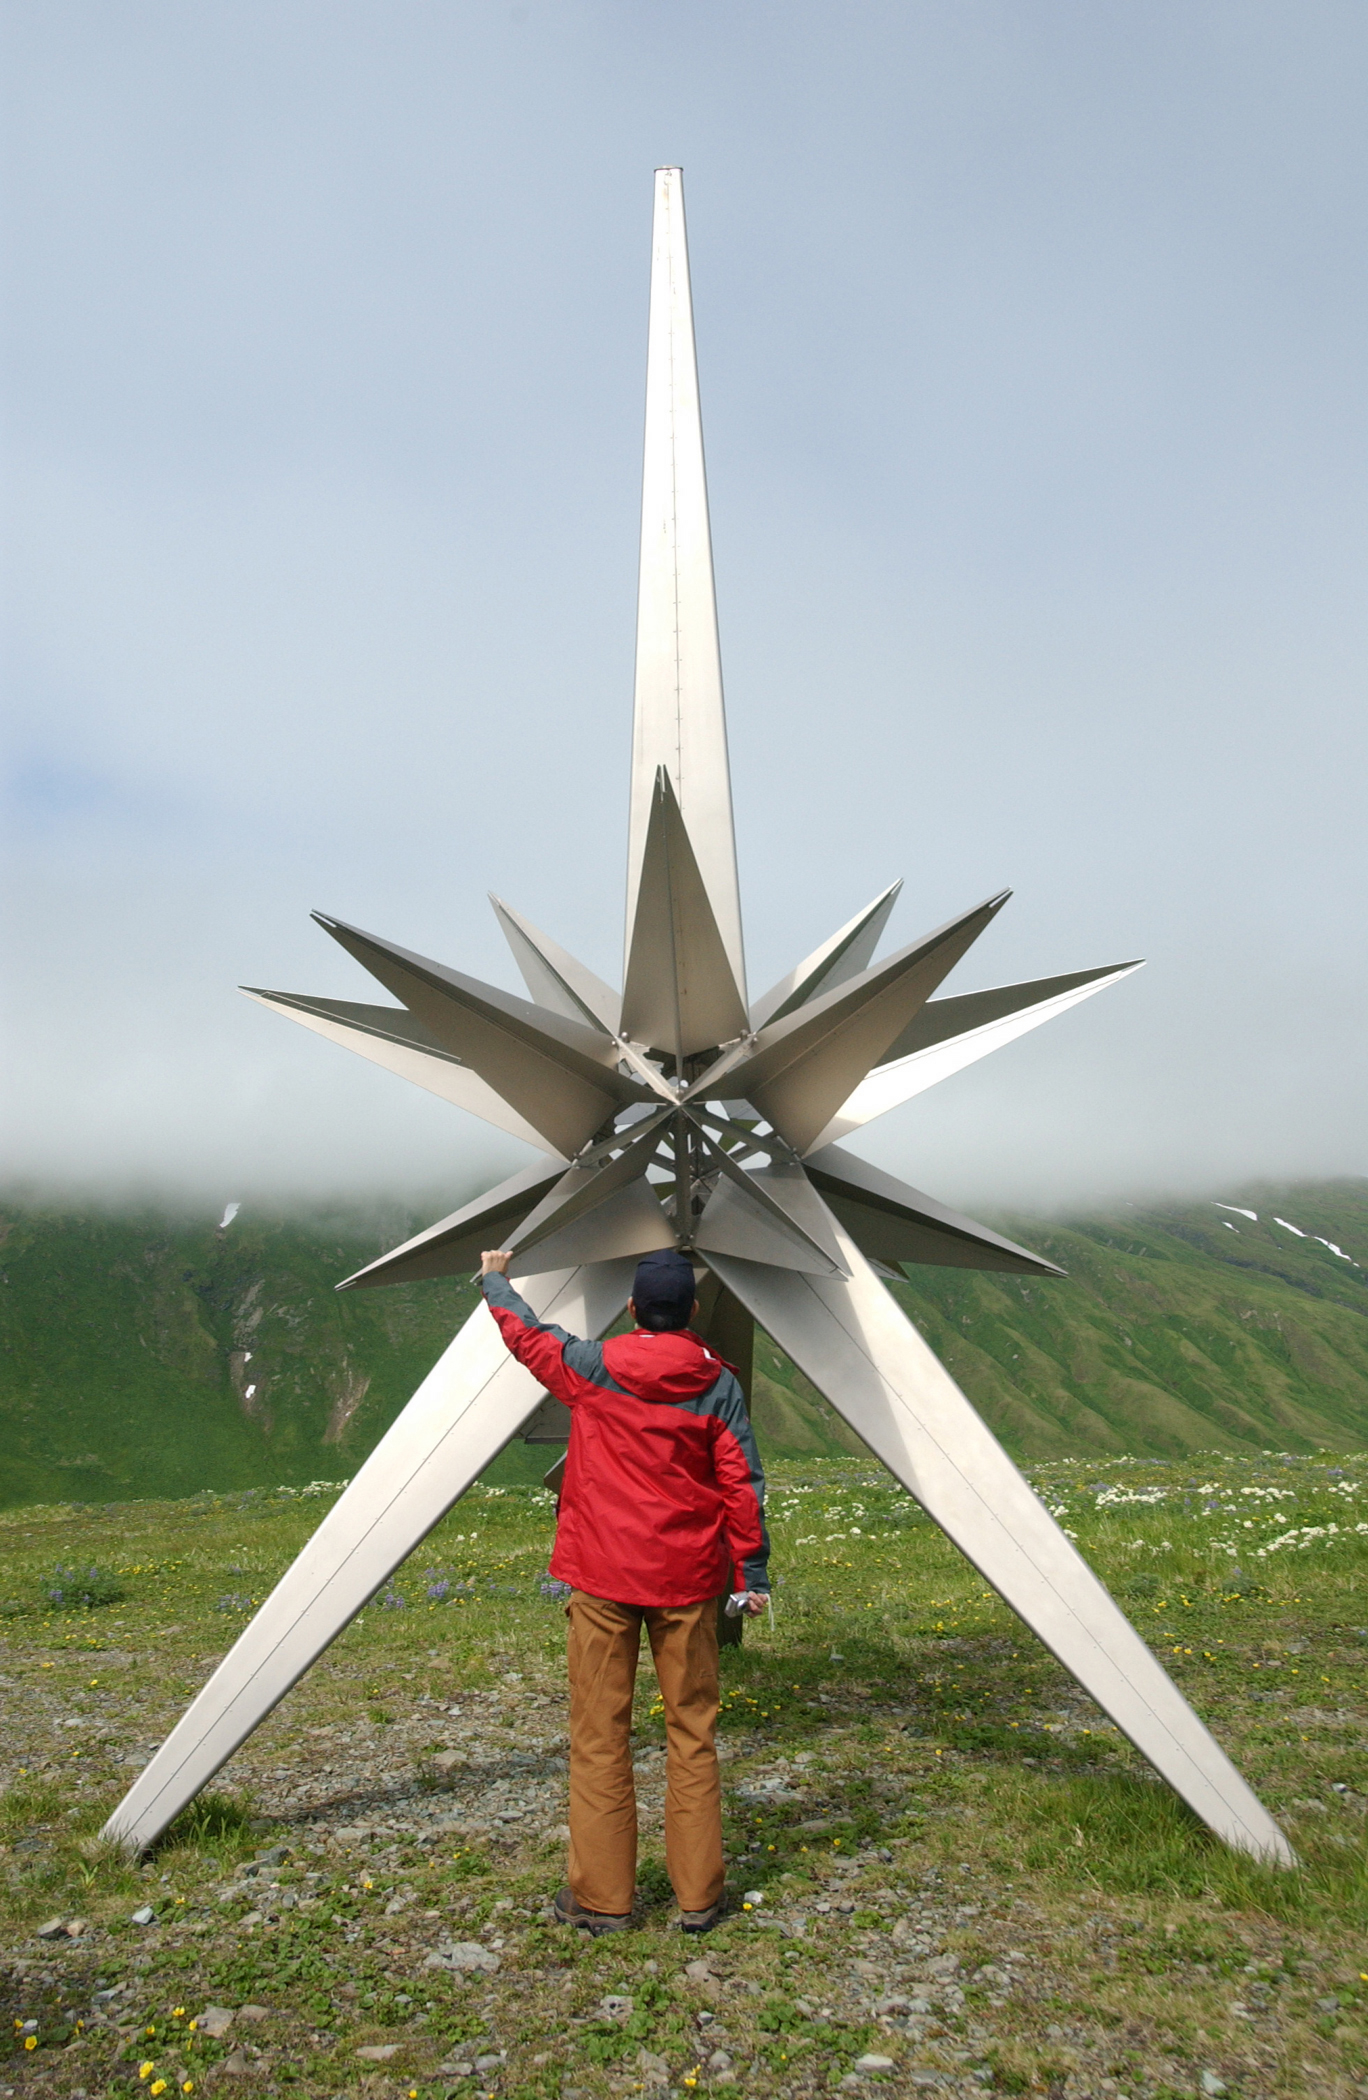 Toshino Makino examines the Peace Monument on Attu Island July 11, 2007. Makino was sent to Attu as part of a Japanese delegation to identify the location of the remains of Japanese soldiers and ensure the titanium monument has not been damaged by the extreme weather of Attu Island.